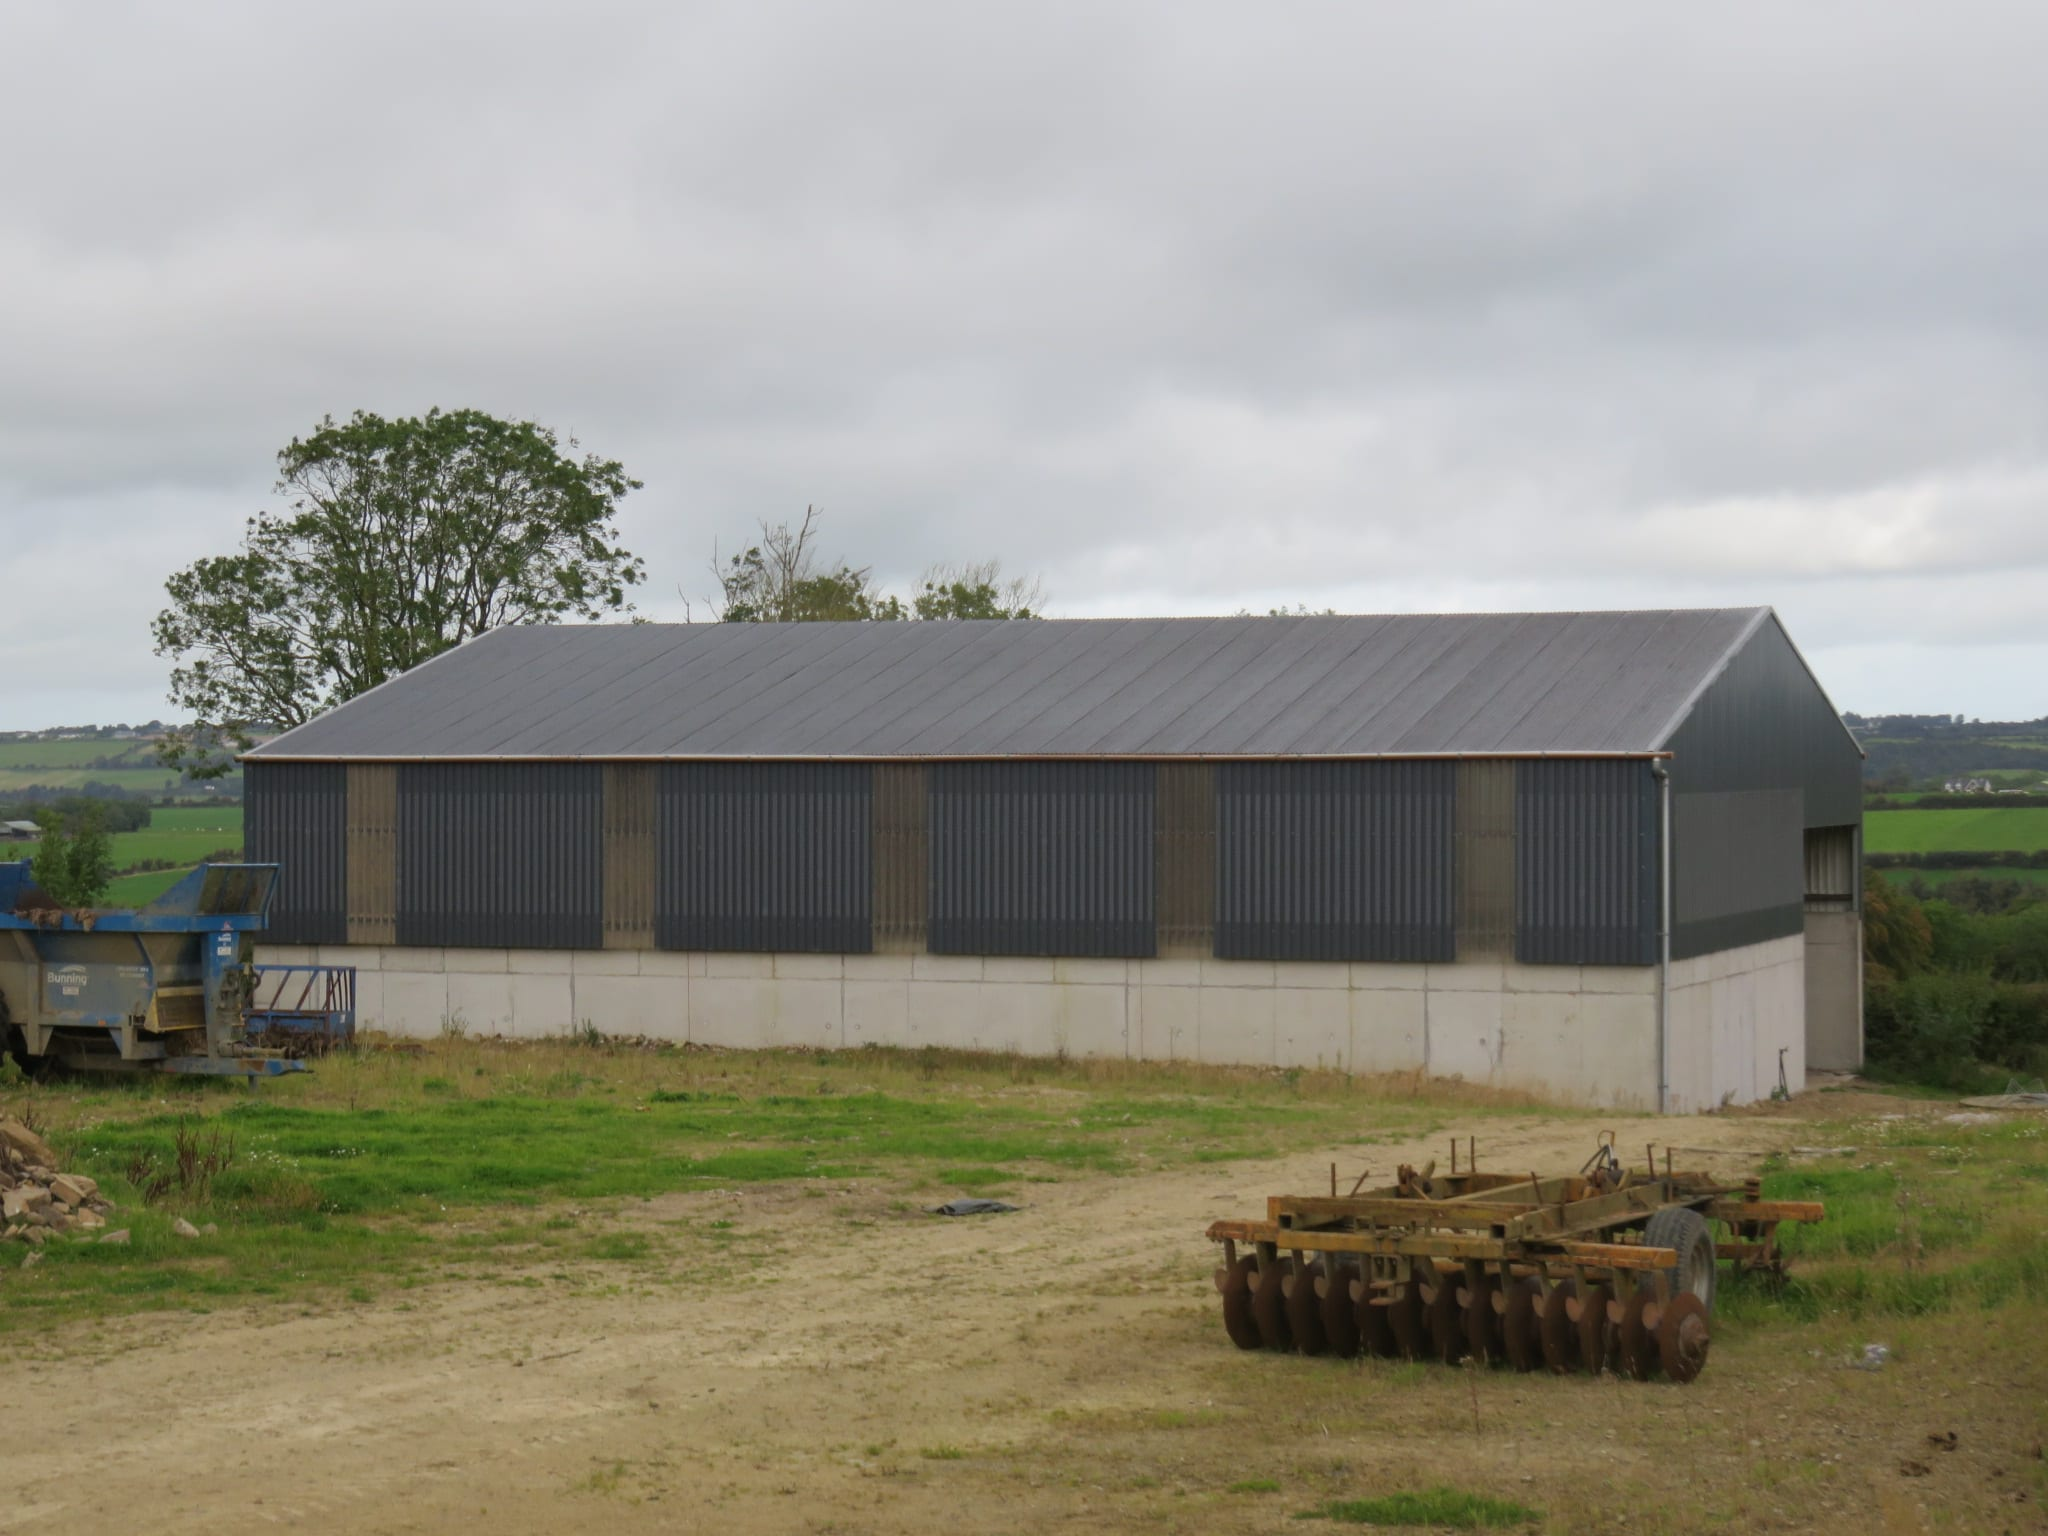 Shed d IMG_7348